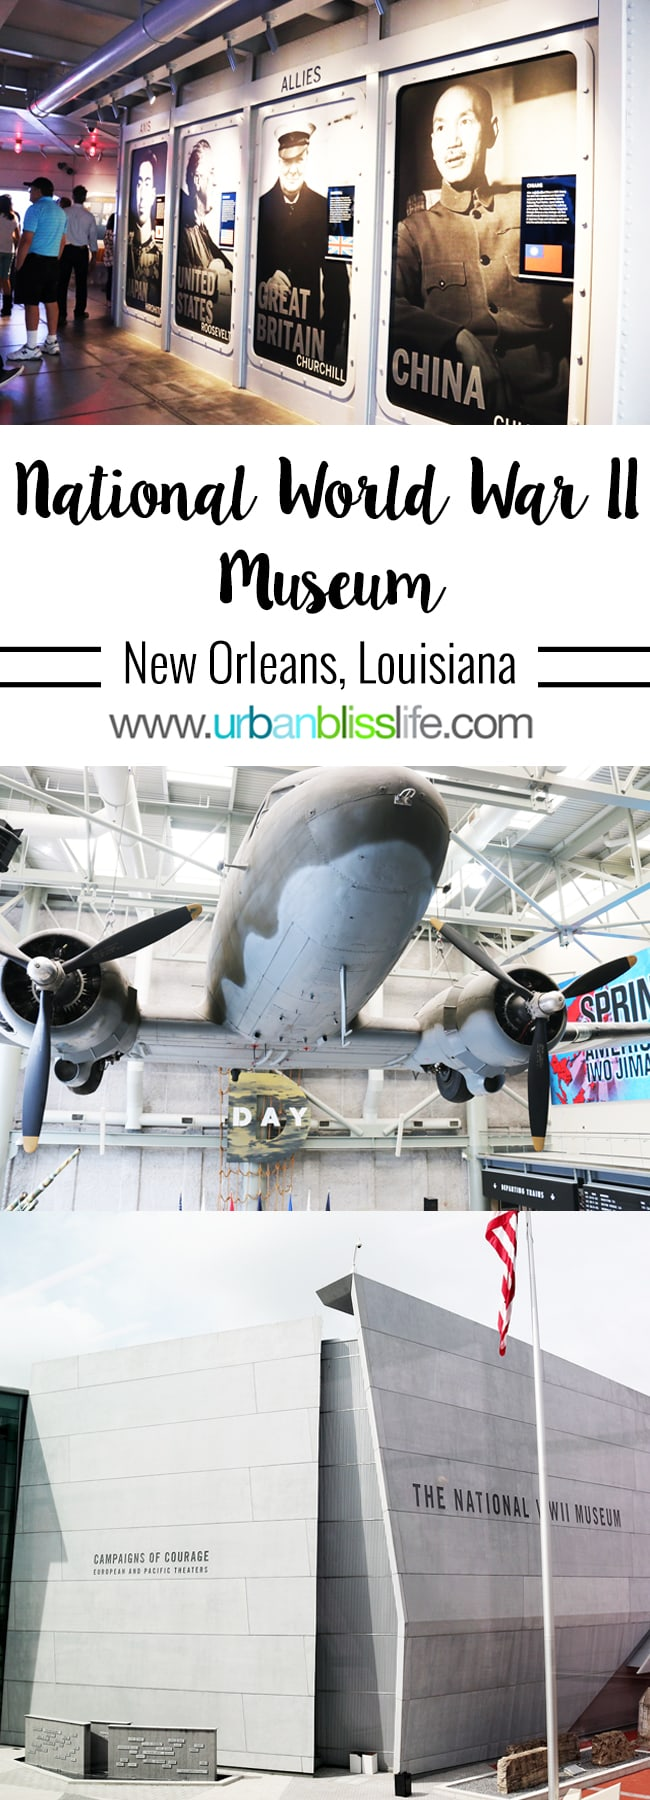 National World War II Museum in New Orleans, Louisiana, photos and review on UrbanBlissLife.com.